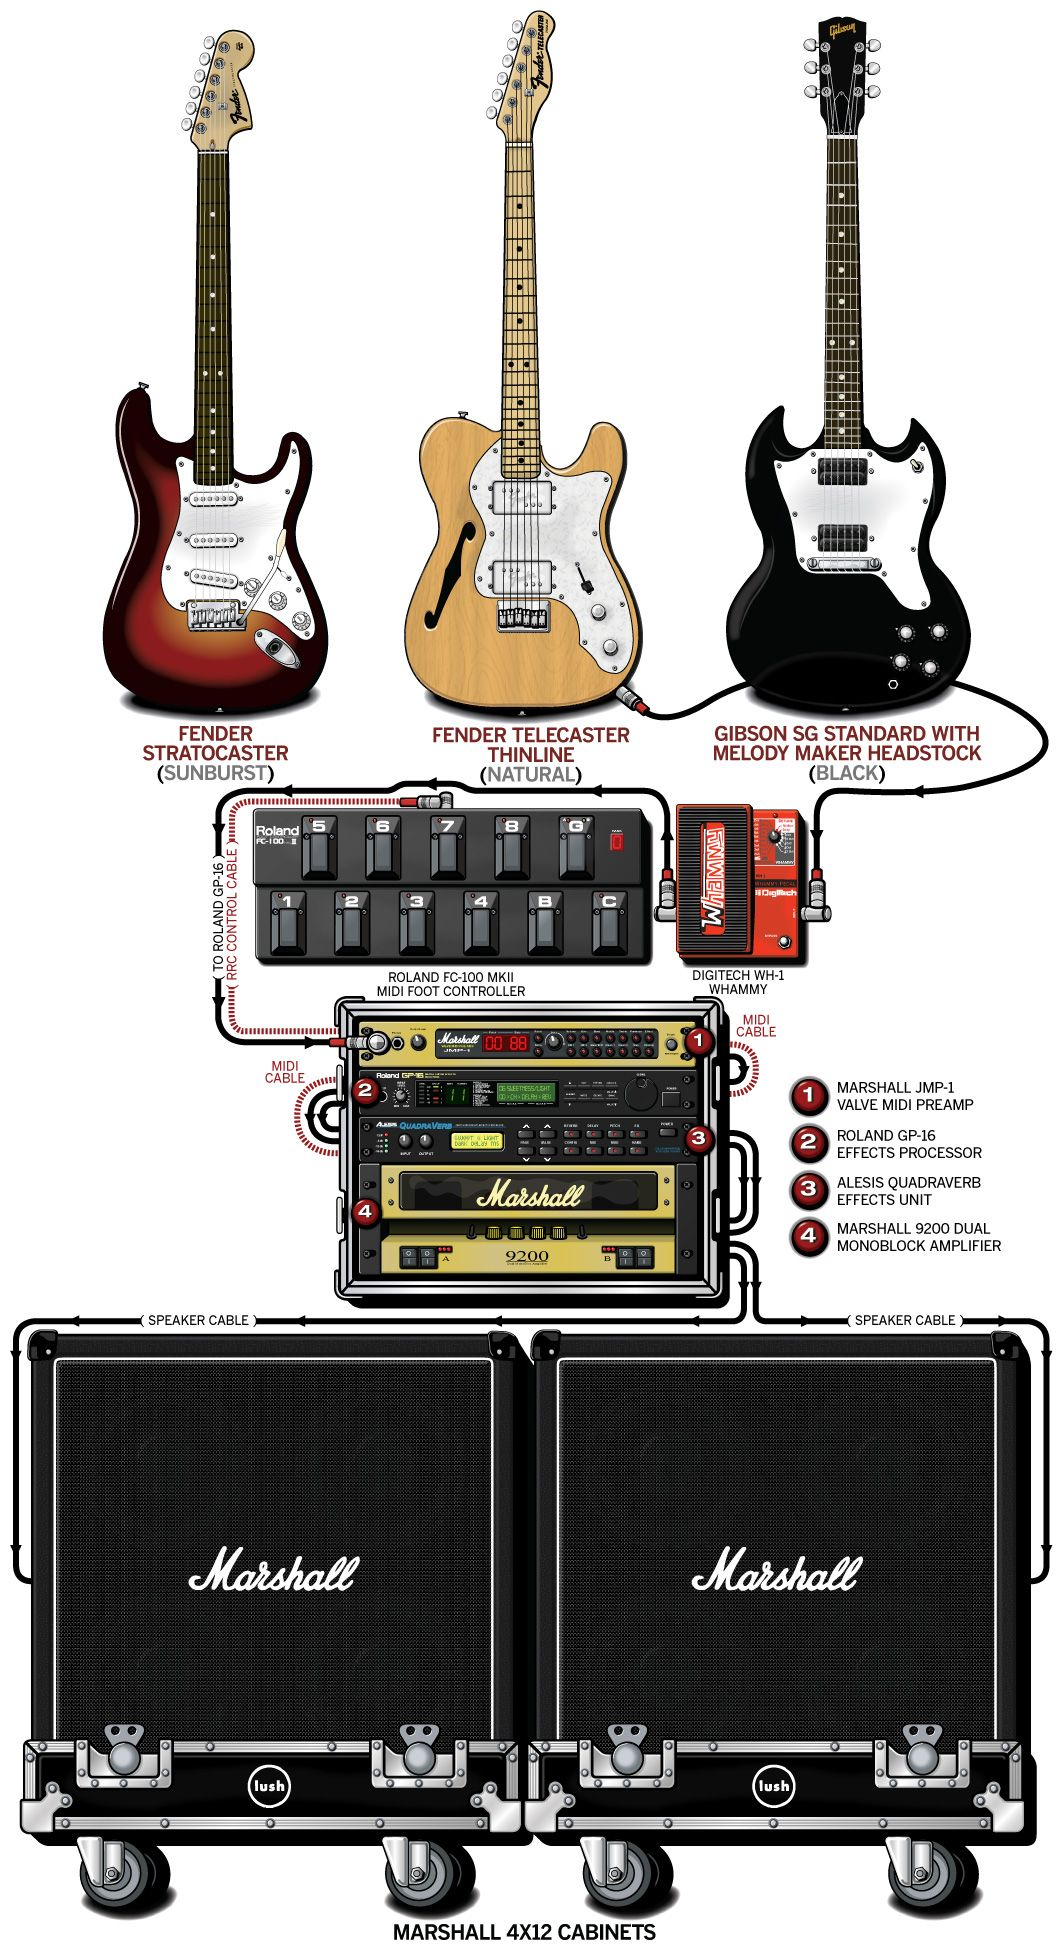 Guitar Rig Diagram Craftsman Lt2000 Wiring A Detailed Gear Of Emma Anderson 39s Lush Stage